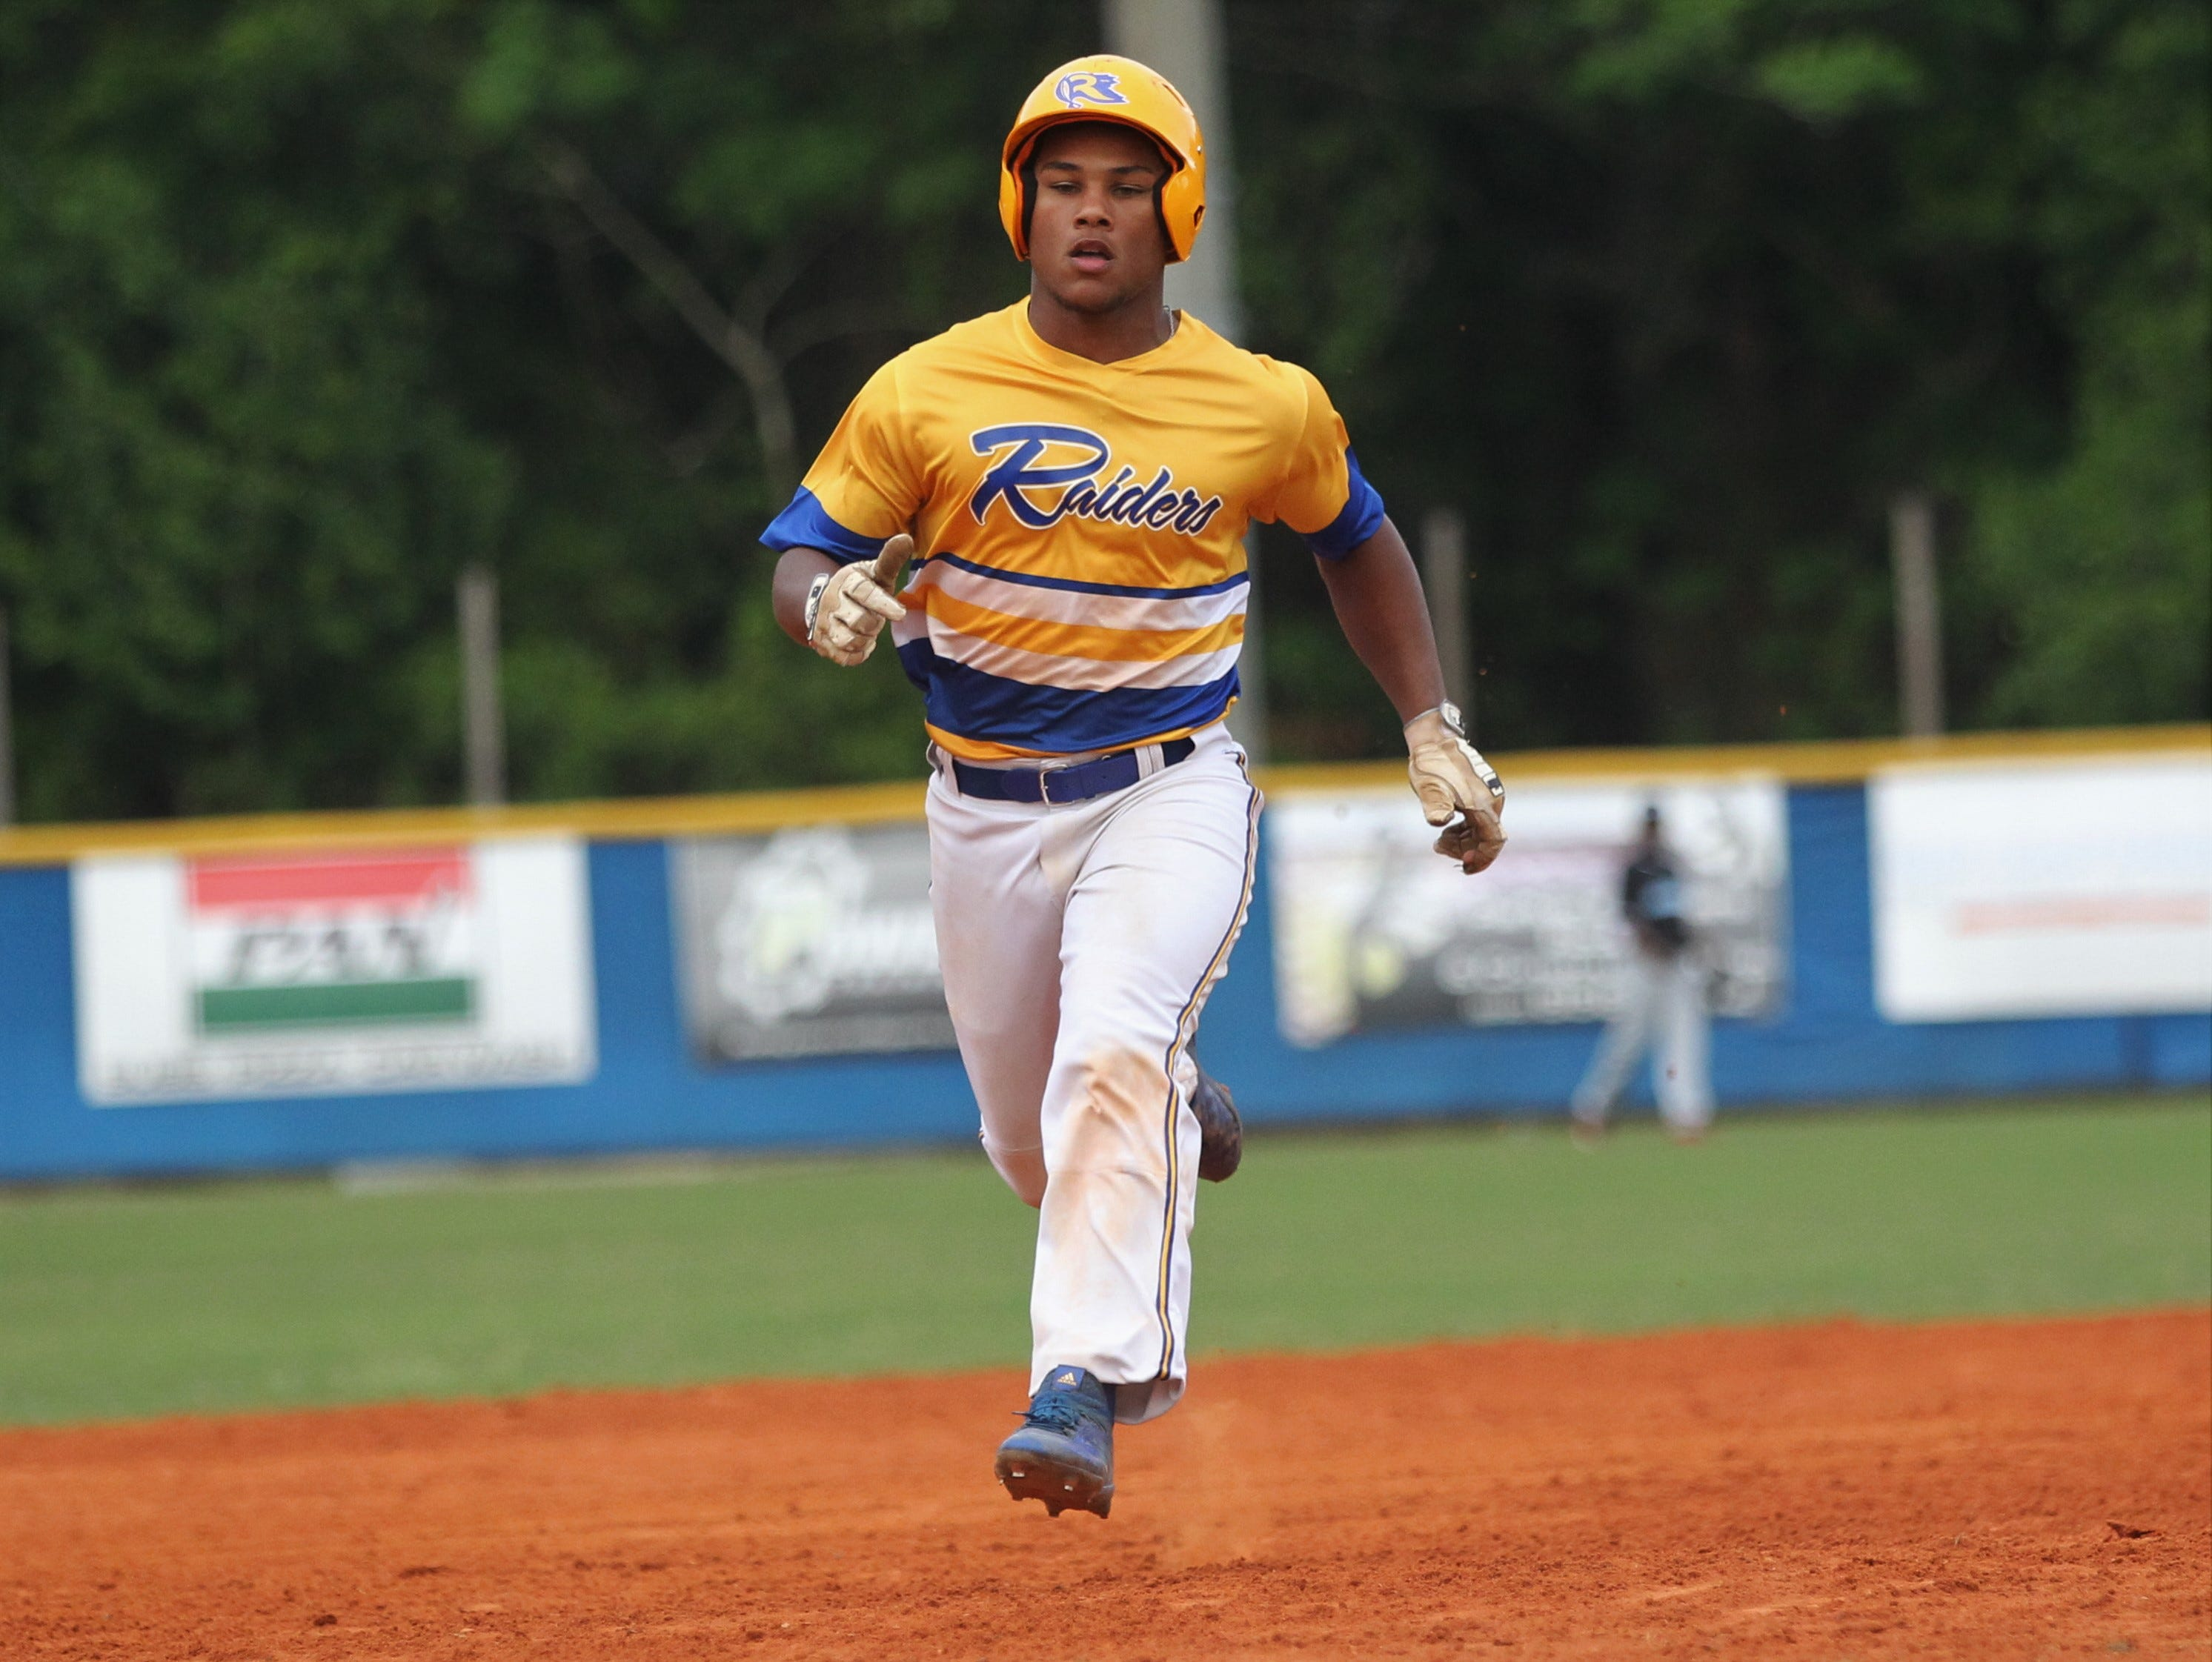 Rickards sophomore Will Brown trots into third with a triple as Rickards beat Gadsden County 18-0 in three innings on Friday, April 12, 2019.